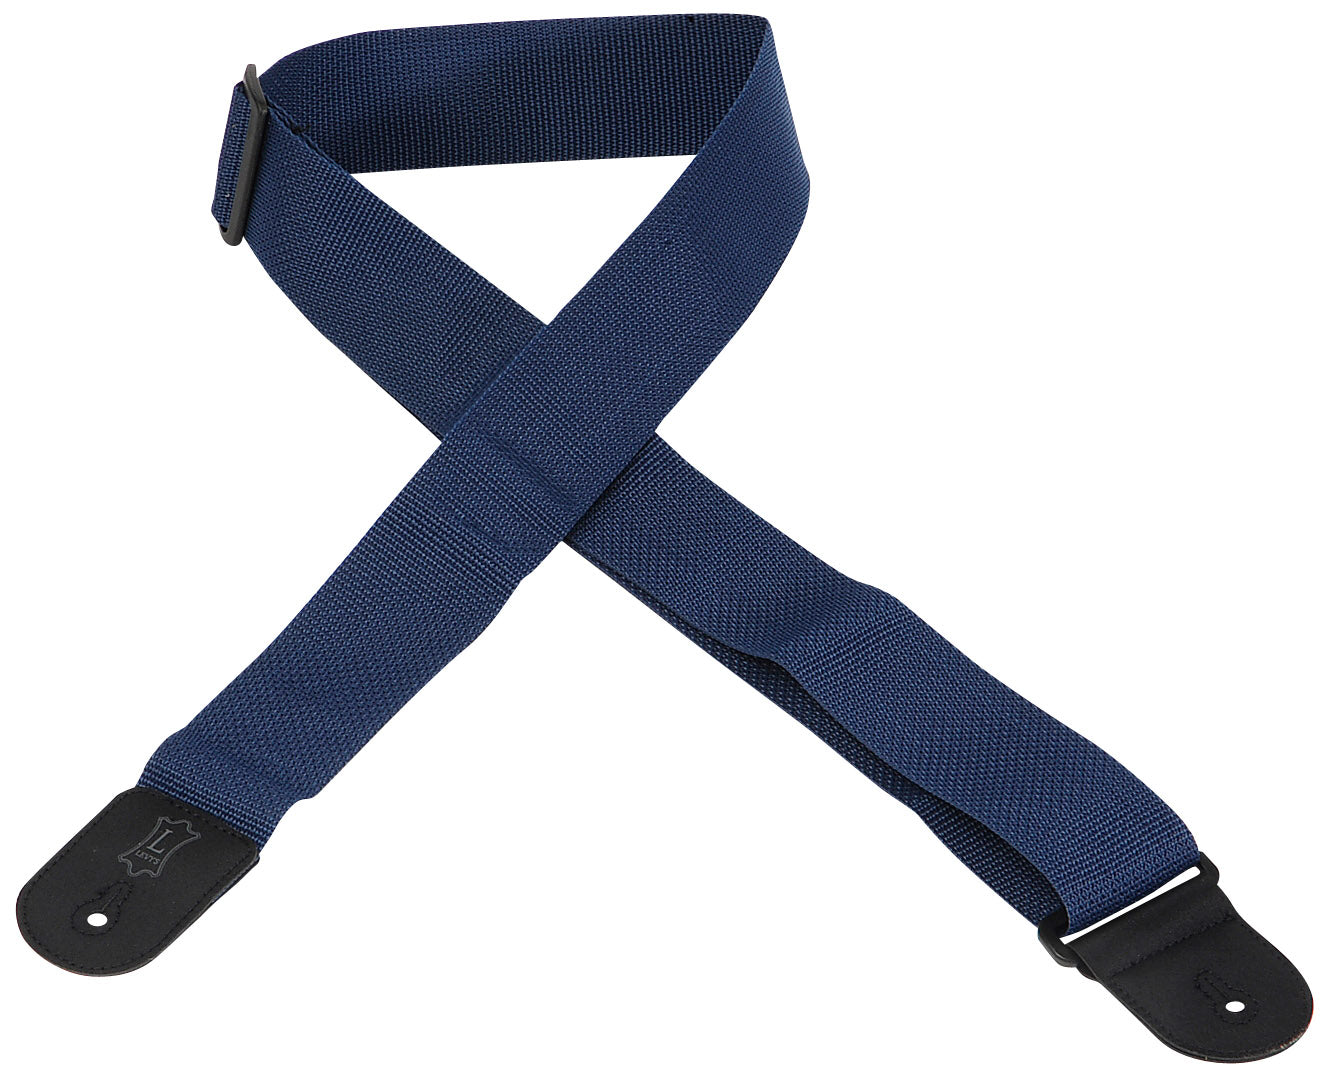 "LEVY'S 2"" POLYPROPYLENE GUITAR STRAP NAVY"